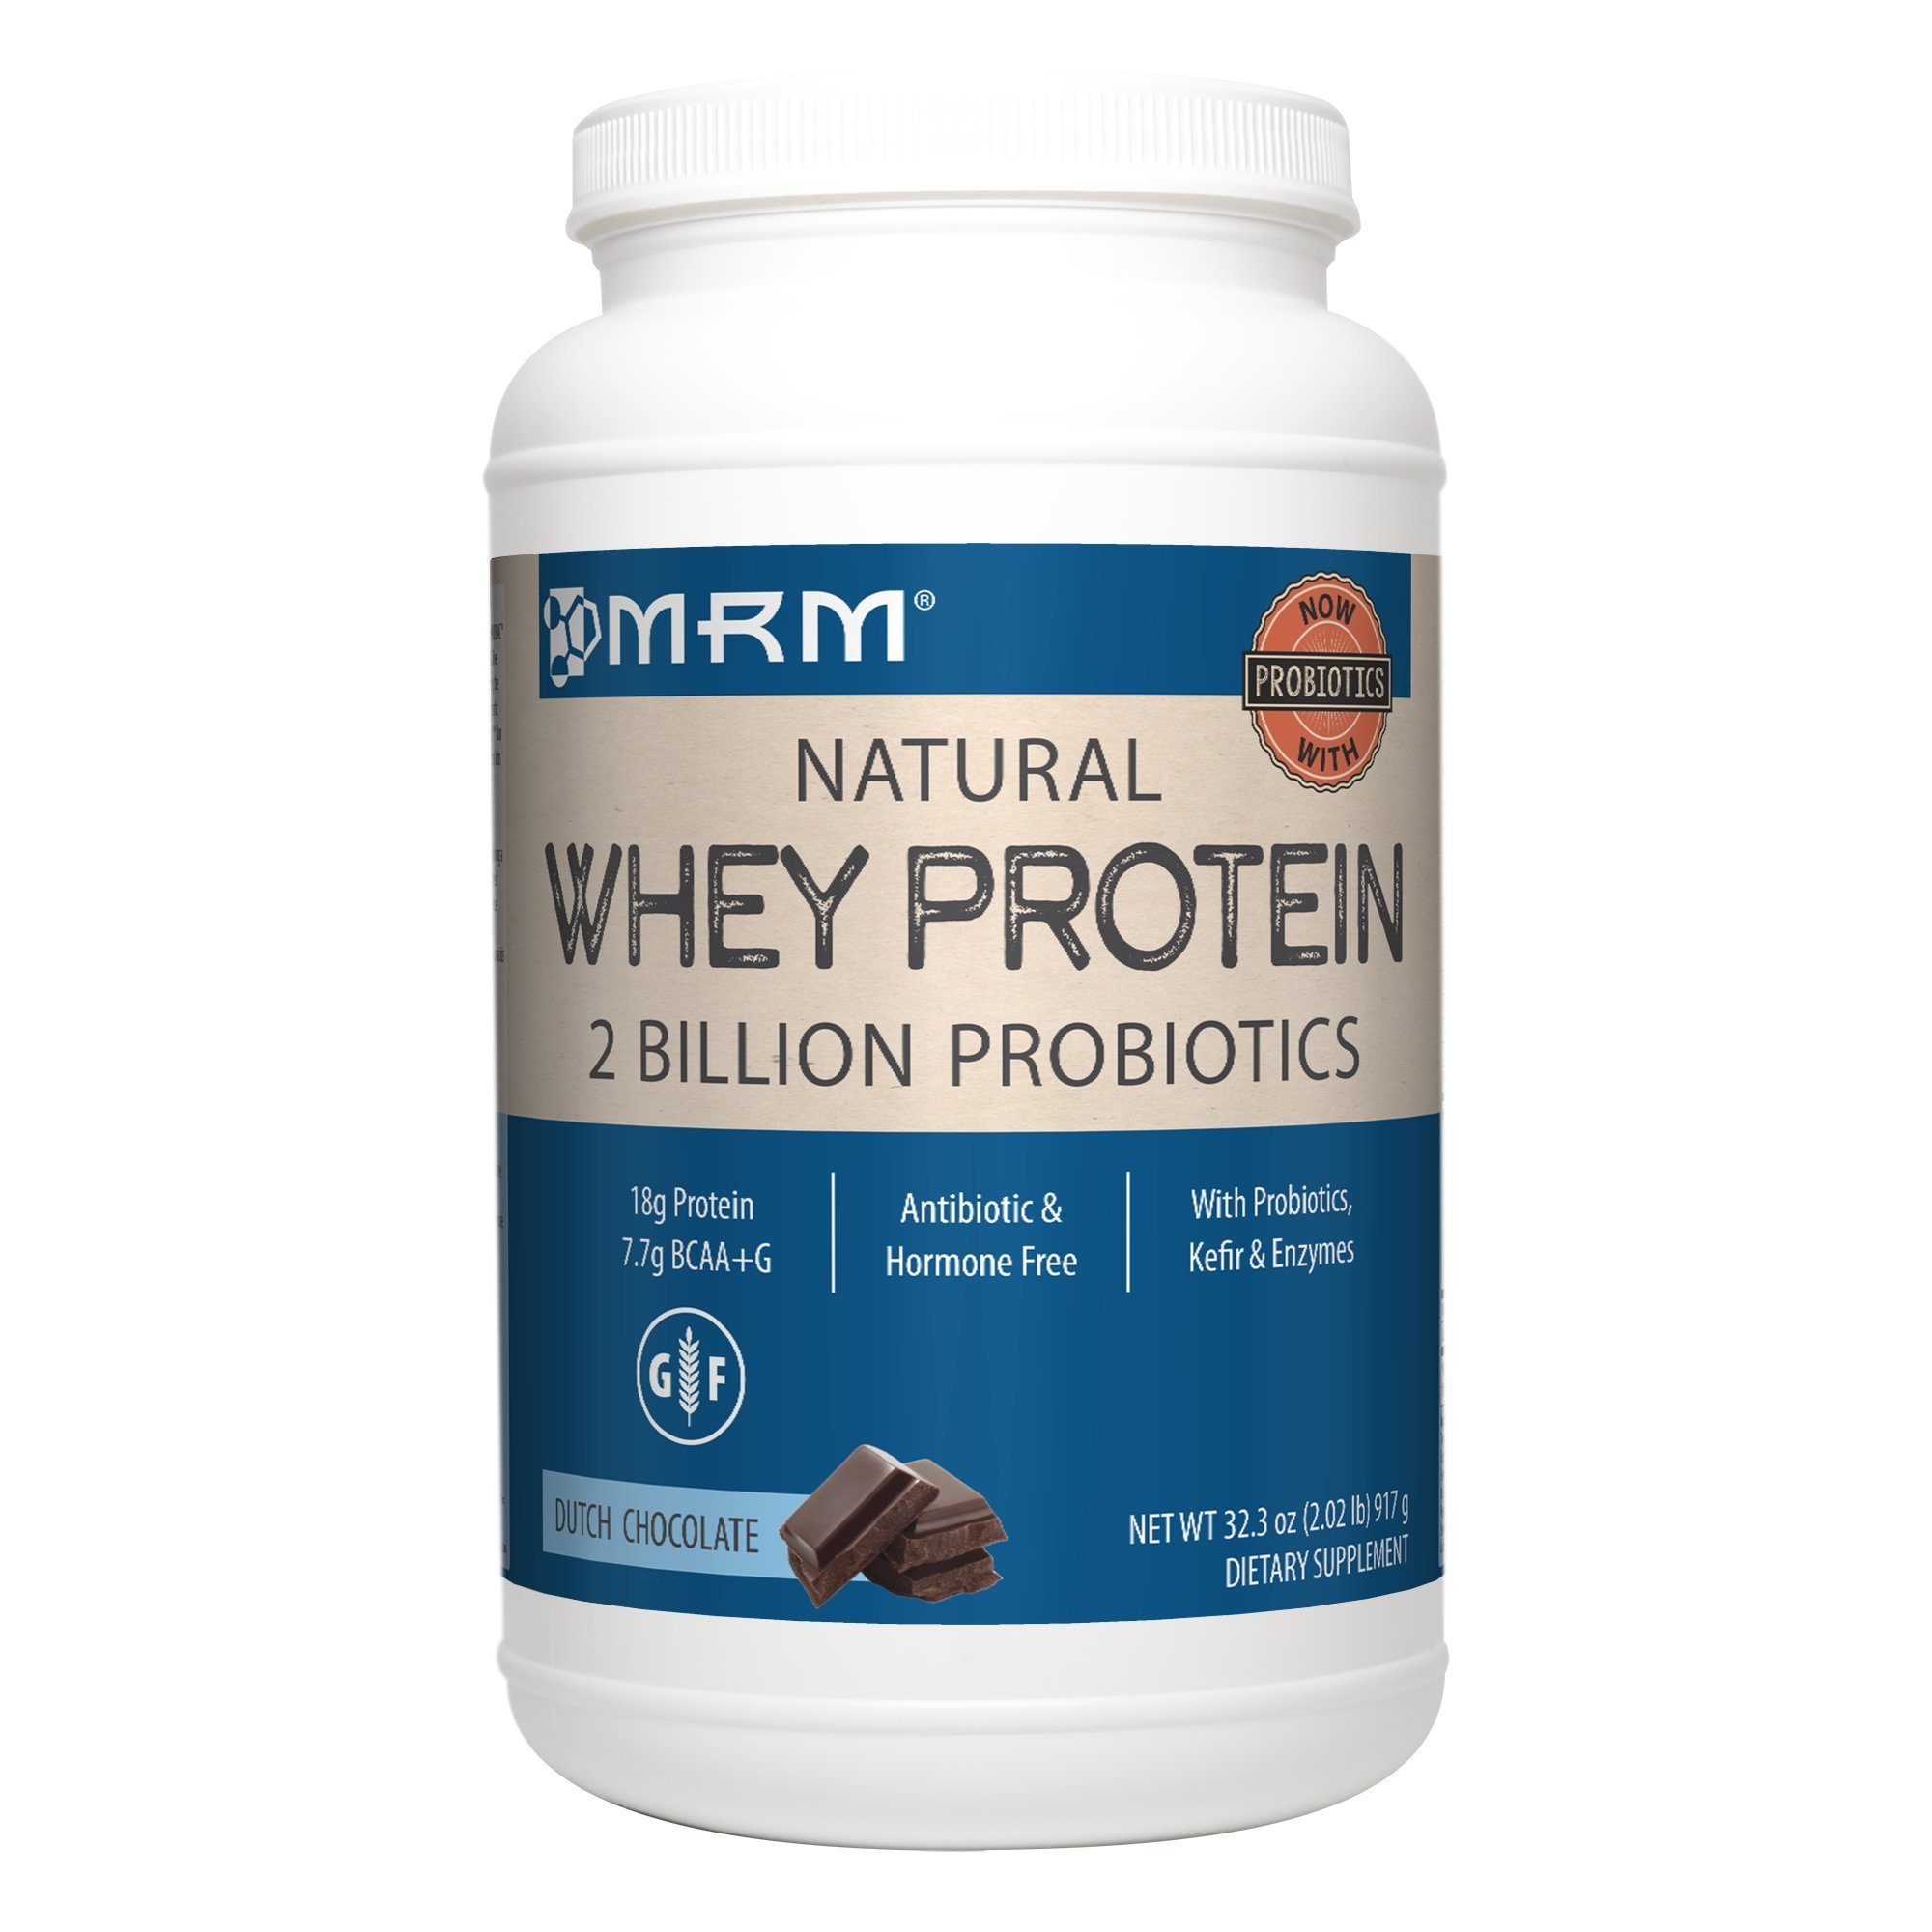 MRM - All Natural Whey Protein Powder, With Essential Amino Acids, BCAAs & Glutamine for Maximum Muscle Growth & Development (Dutch Chocolate), 32 Ounce (Packaging May Vary) by MRM (Image #1)